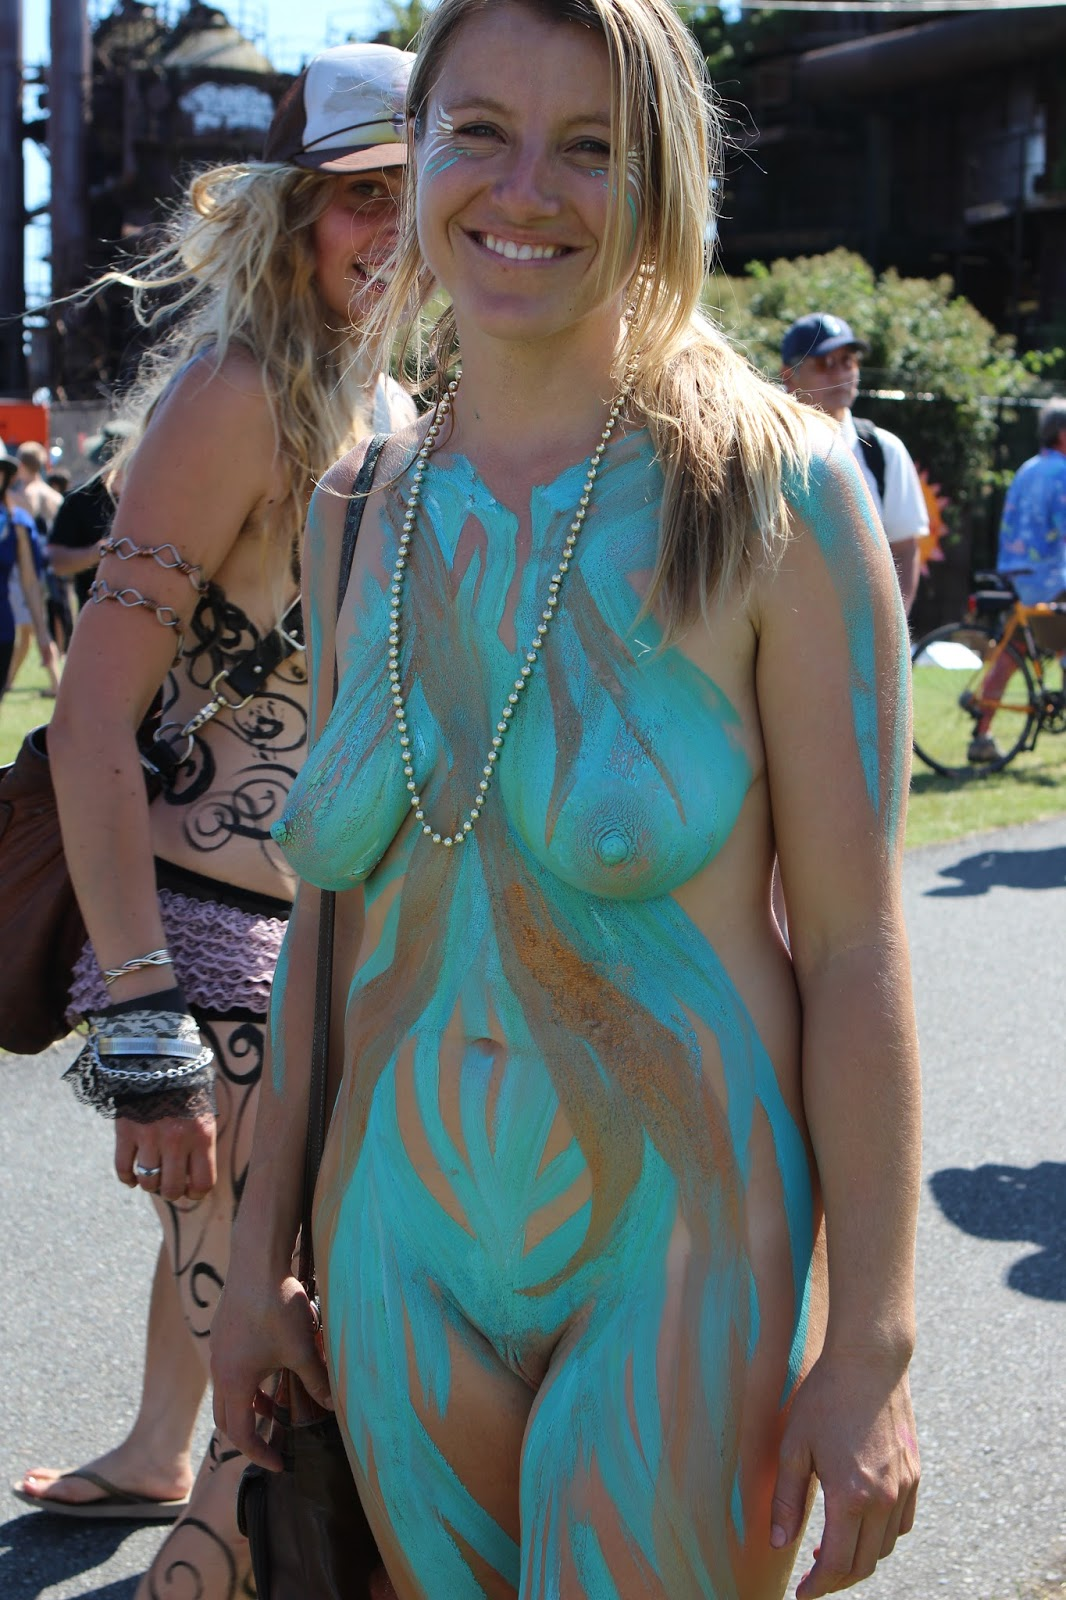 Speaking, nude women body paint public